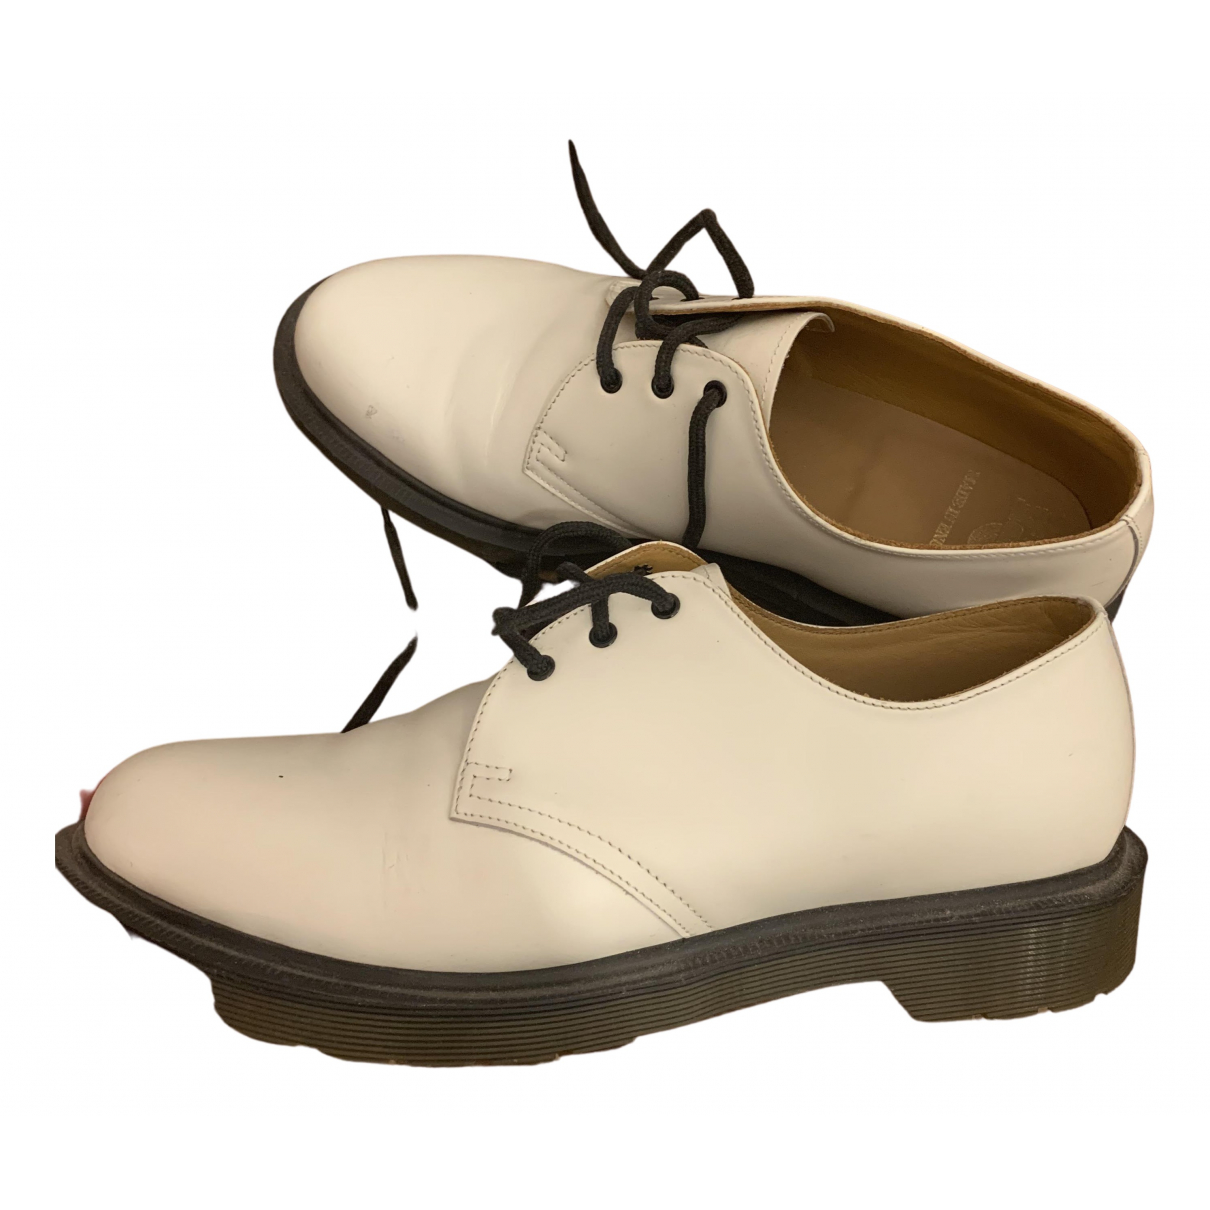 Dr. Martens 1461 (3 eye) White Leather Lace ups for Women 7 UK